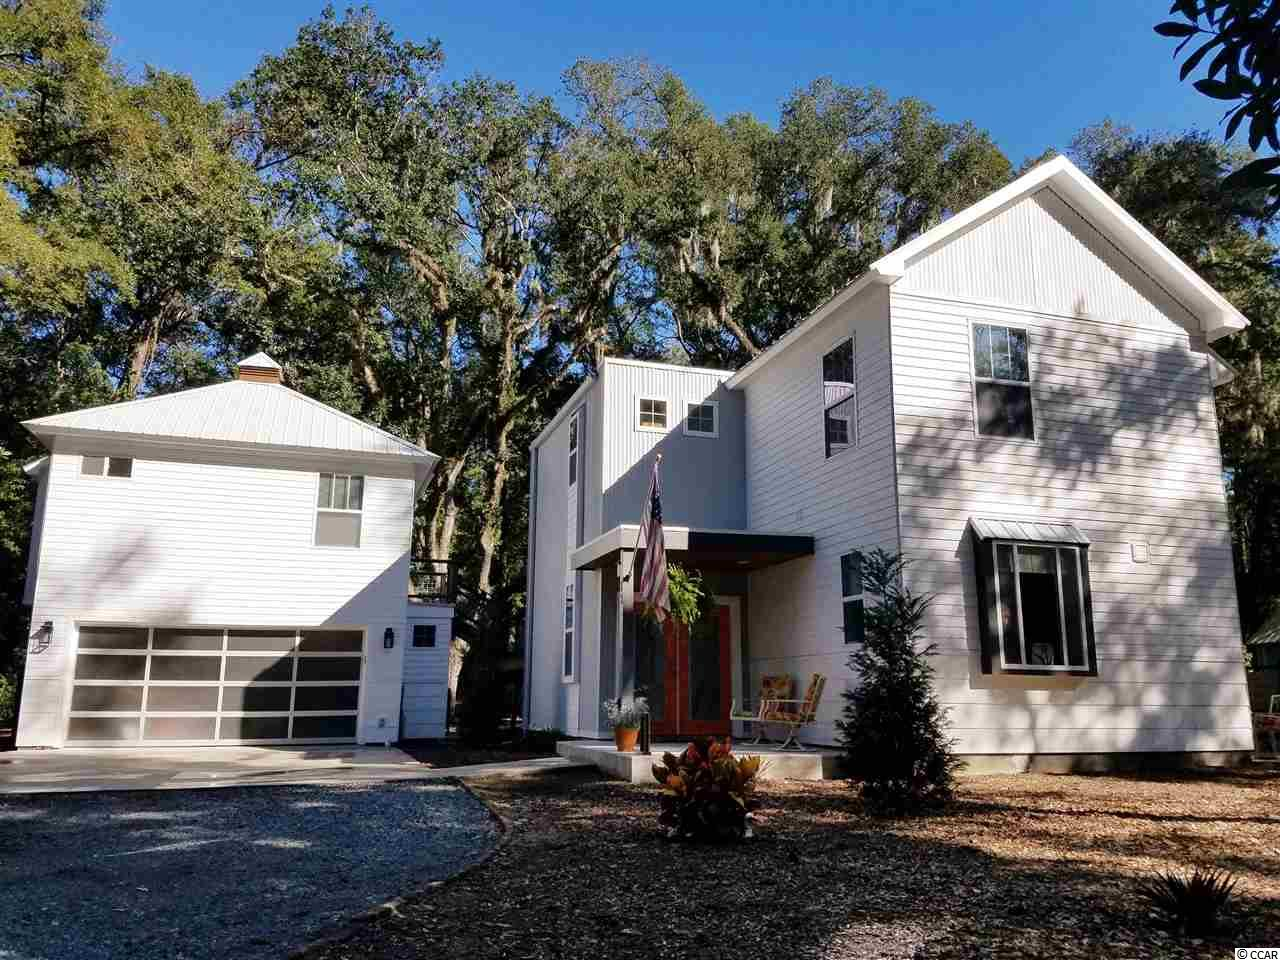 Welcome to Hagley Estates a fantastic golf cart community! Come enjoy this unique, Modern Southern style home with high end fixtures and finish.  The stairs, powder room countertop and window sills are crafted from an eighty two year old Oak tree which stood on property!  You'll love the modern cooks kitchen!!  The home has 3 large bedrooms all with their own bathrooms. Top of the line mini split HVAC system.  Extremely efficient, hybrid heat pump hot water heater.  All baths have one piece dual flush toilets and low water consumption faucets/showers.  Brick floor area prepped for outdoor shower.  Entire house is insulated with dense pack cellulose.    There is a separate entrance to the spacious mother- in- law suite that has a kitchenette, full bath and walk in closet. Now ,take a two minute walk across the street to the beautiful Waccamaw River and the sunsets. Three minutes to Hagley boat ramp, eight minutes to Pawleys Island beaches. Bring your boats and your RV's. No restrictions, no mandatory HOA. If you're looking for a tasteful one-of-a-kind, look no further!